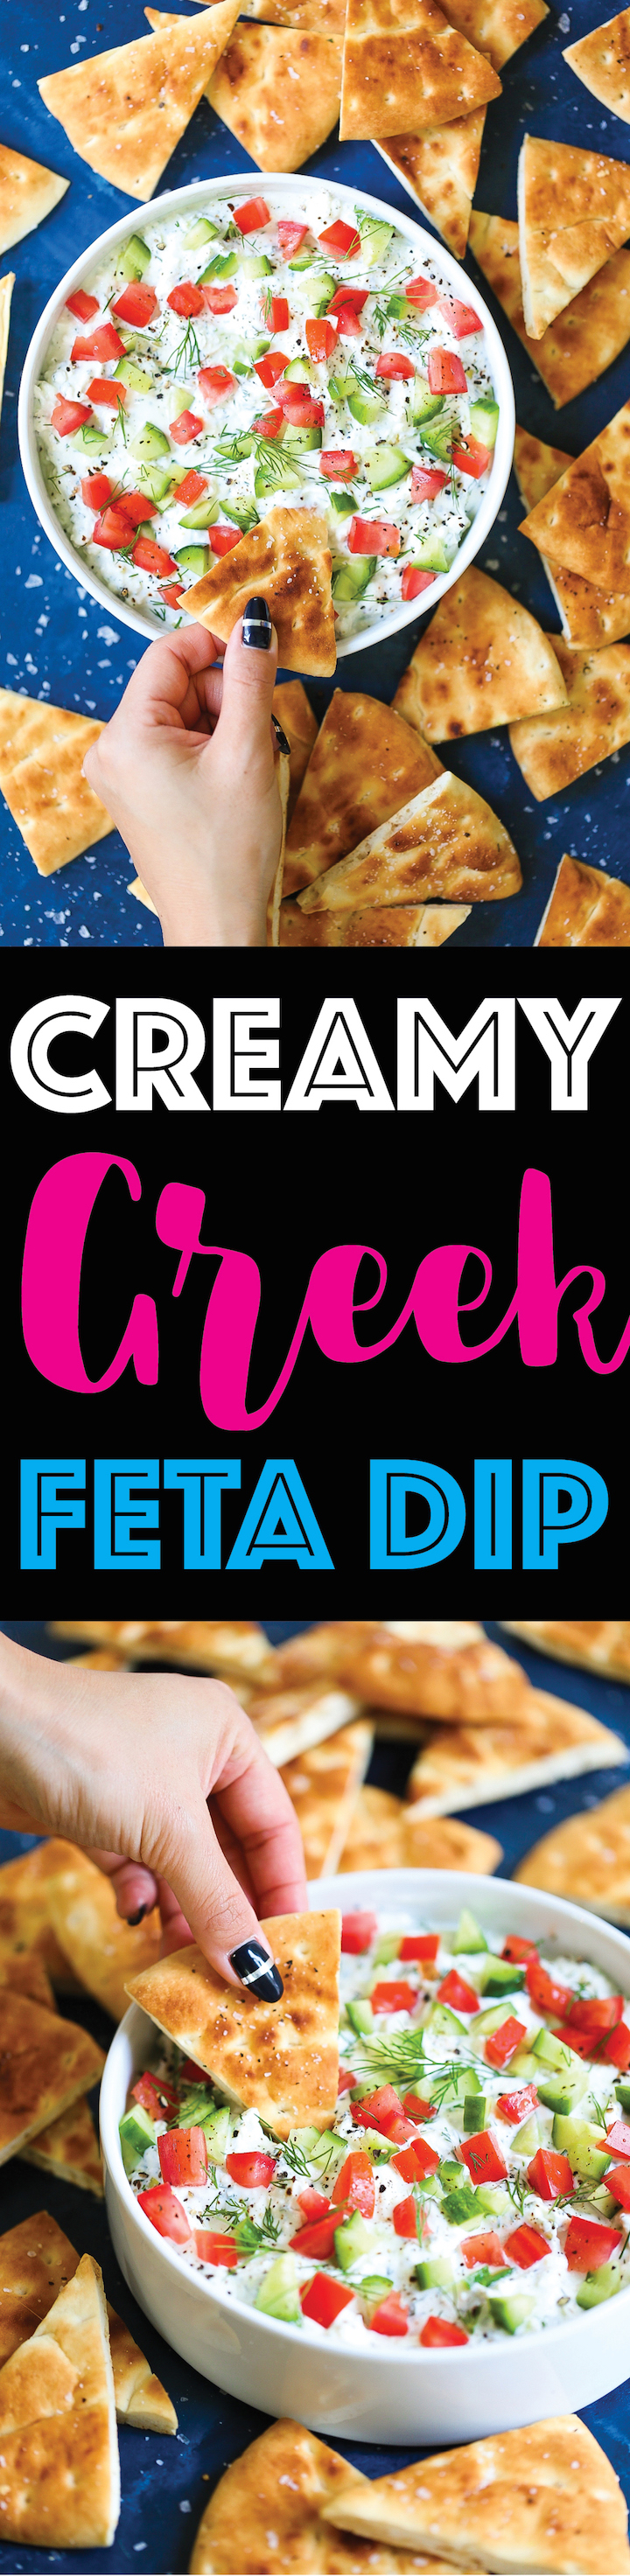 Creamy Greek Feta Dip - Such a simple yet creamy, satisfying dip that everyone will go crazy for! Takes just 15 minutes (or less) to whip up using feta, cream cheese, Greek yogurt, lemon juice and fresh herbs! You can even make this ahead of time and chill for up to 2 days! Serve with pita chips.